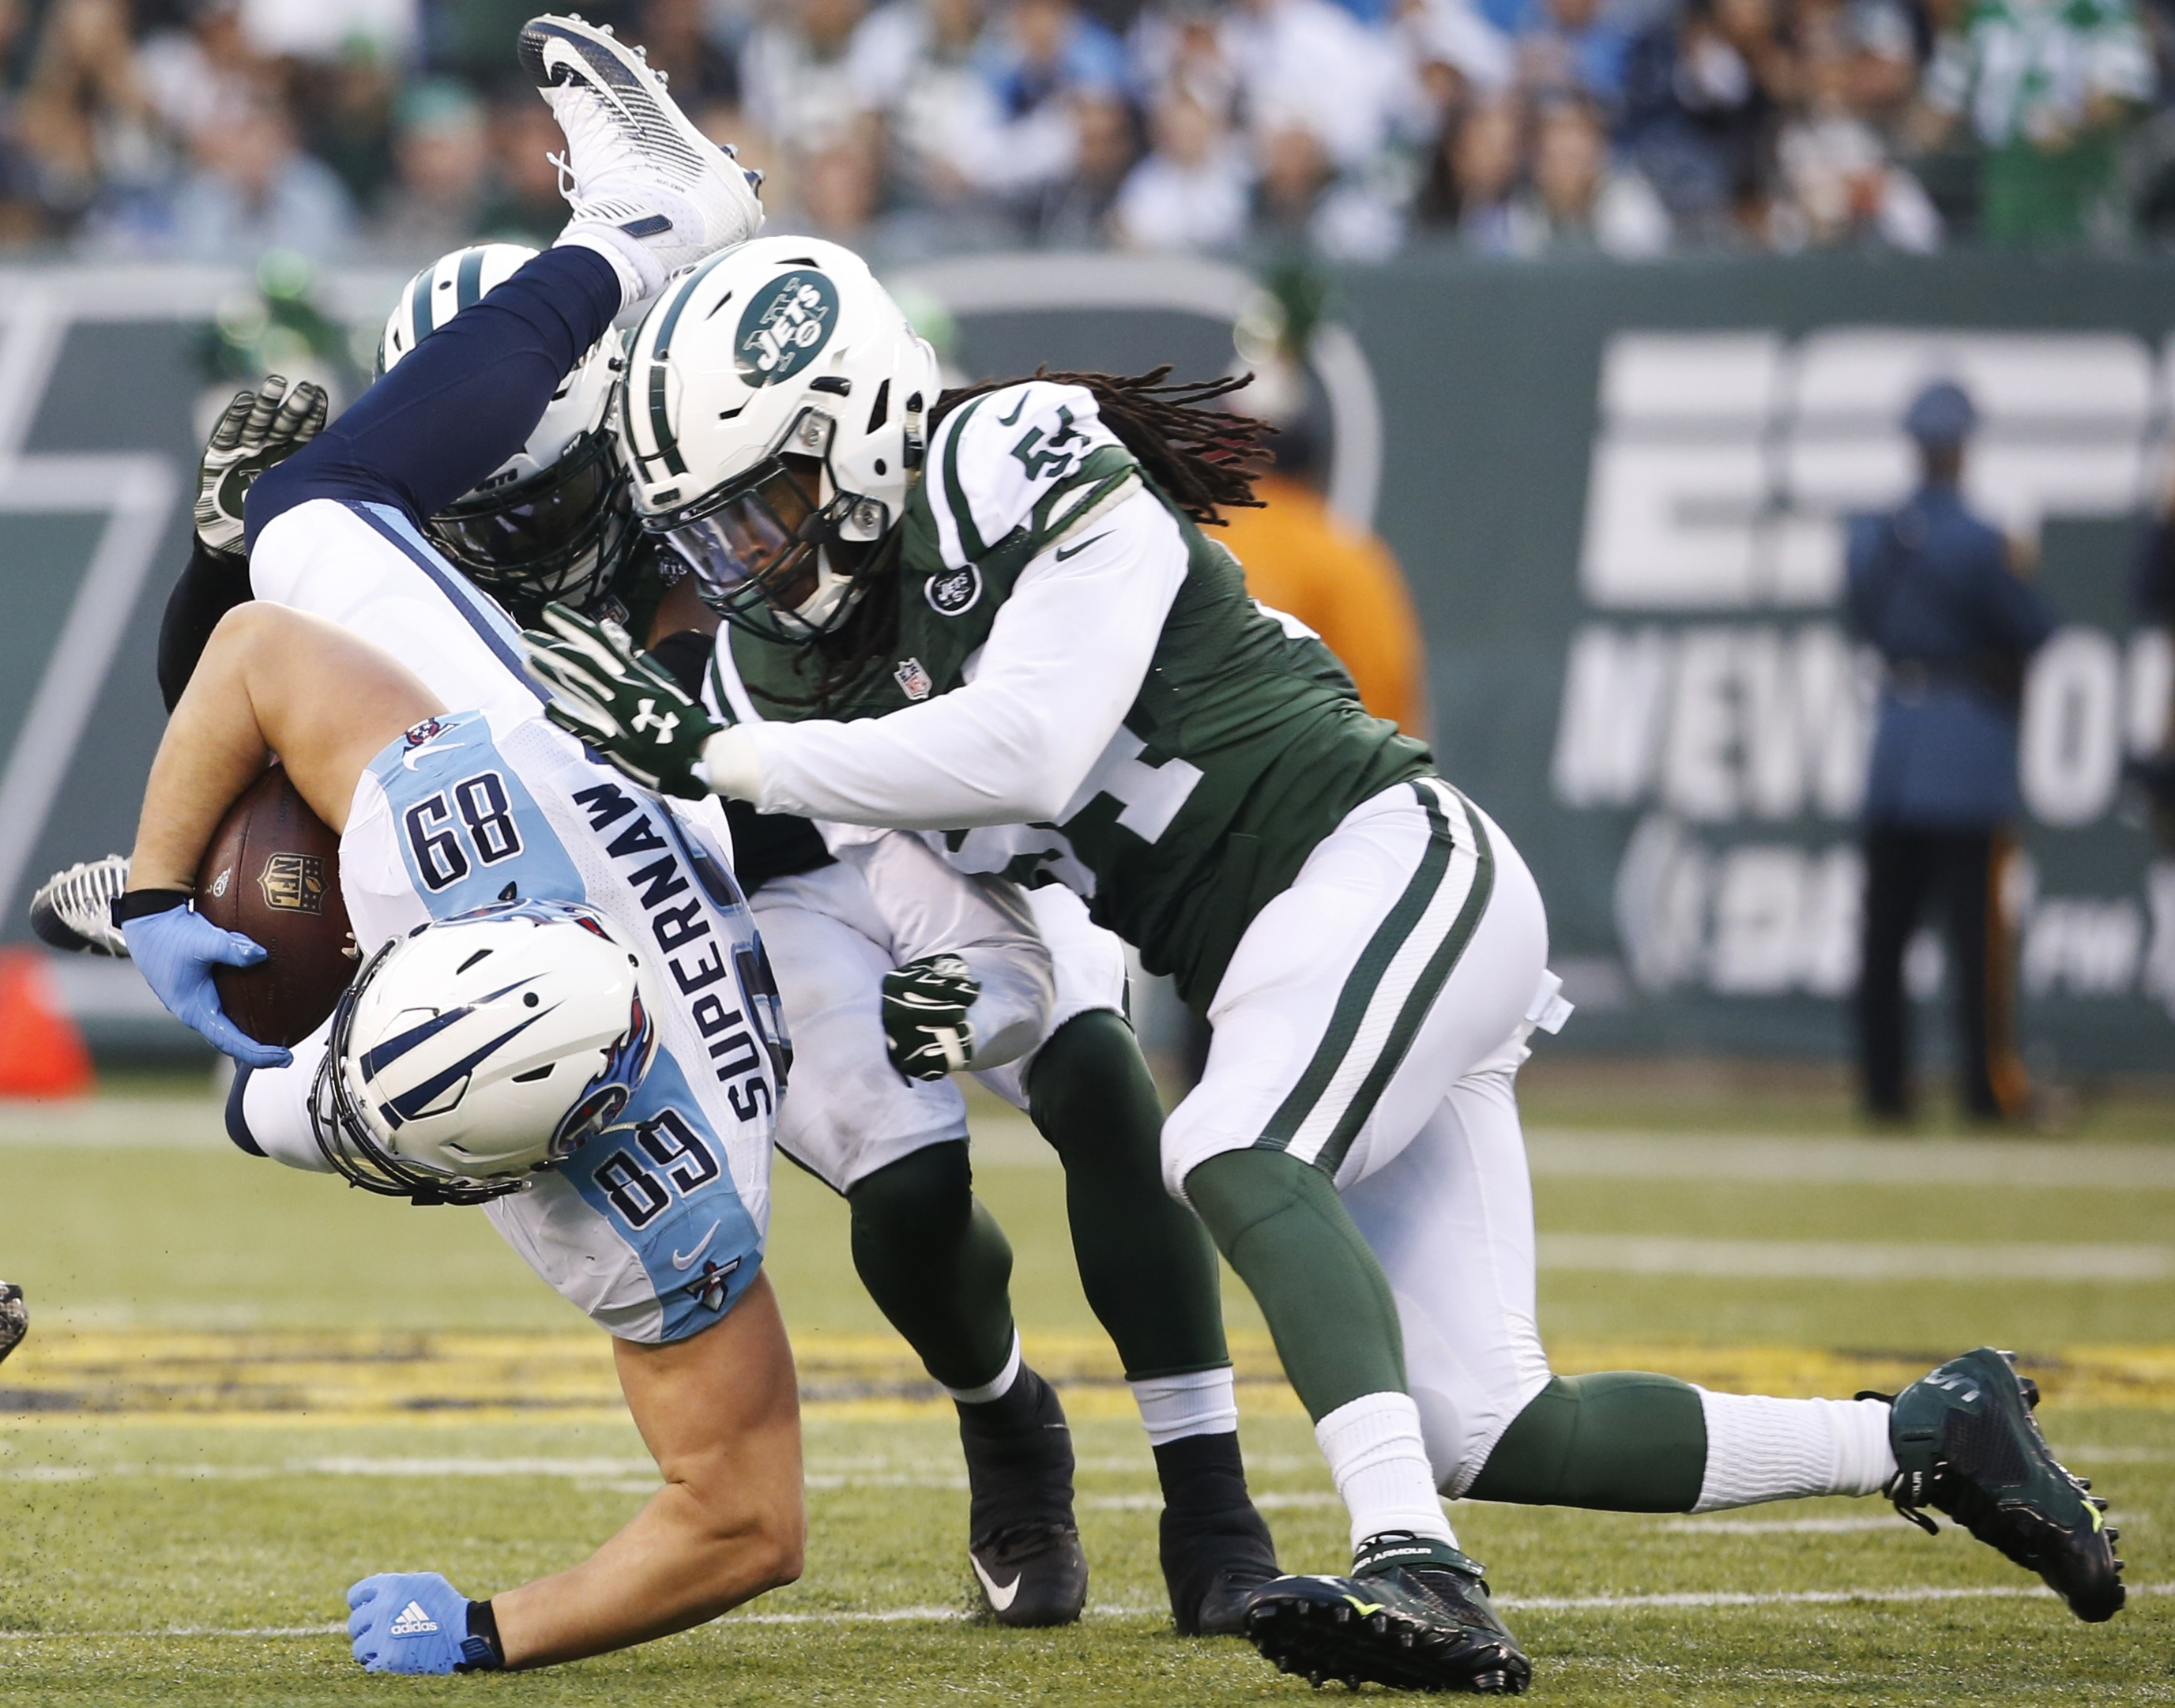 New York Jets inside linebacker Demario Davis (56) tackles Tennessee Titans' Phillip Supernaw (89) during the second half of an NFL football game Sunday, Dec. 13, 2015, in East Rutherford, N.J. The Jets won 30-8.  (AP Photo/Julio Cortez)